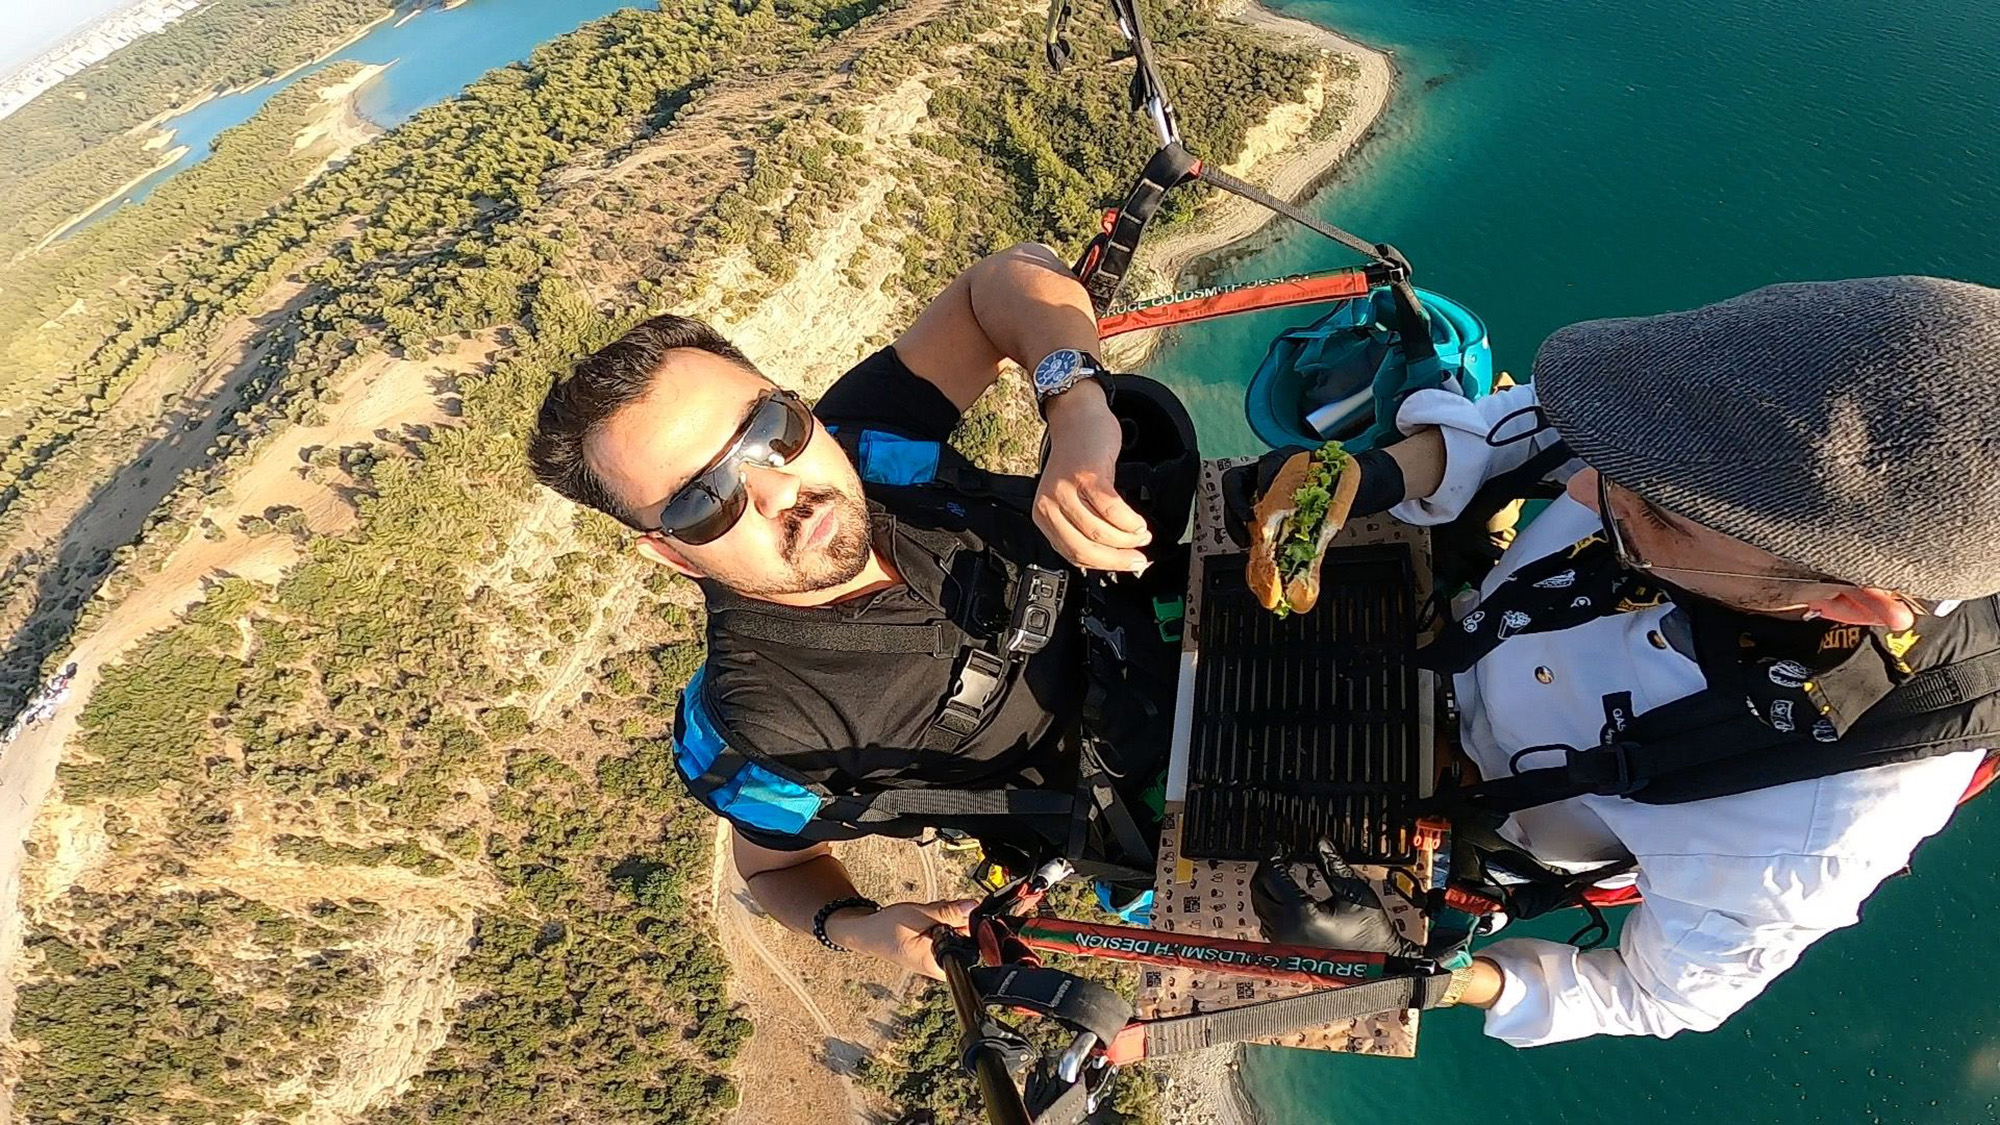 VIDEO: You Want Flies With That? Paragliding Chef Cooks Cheeseburger At 2,000ft